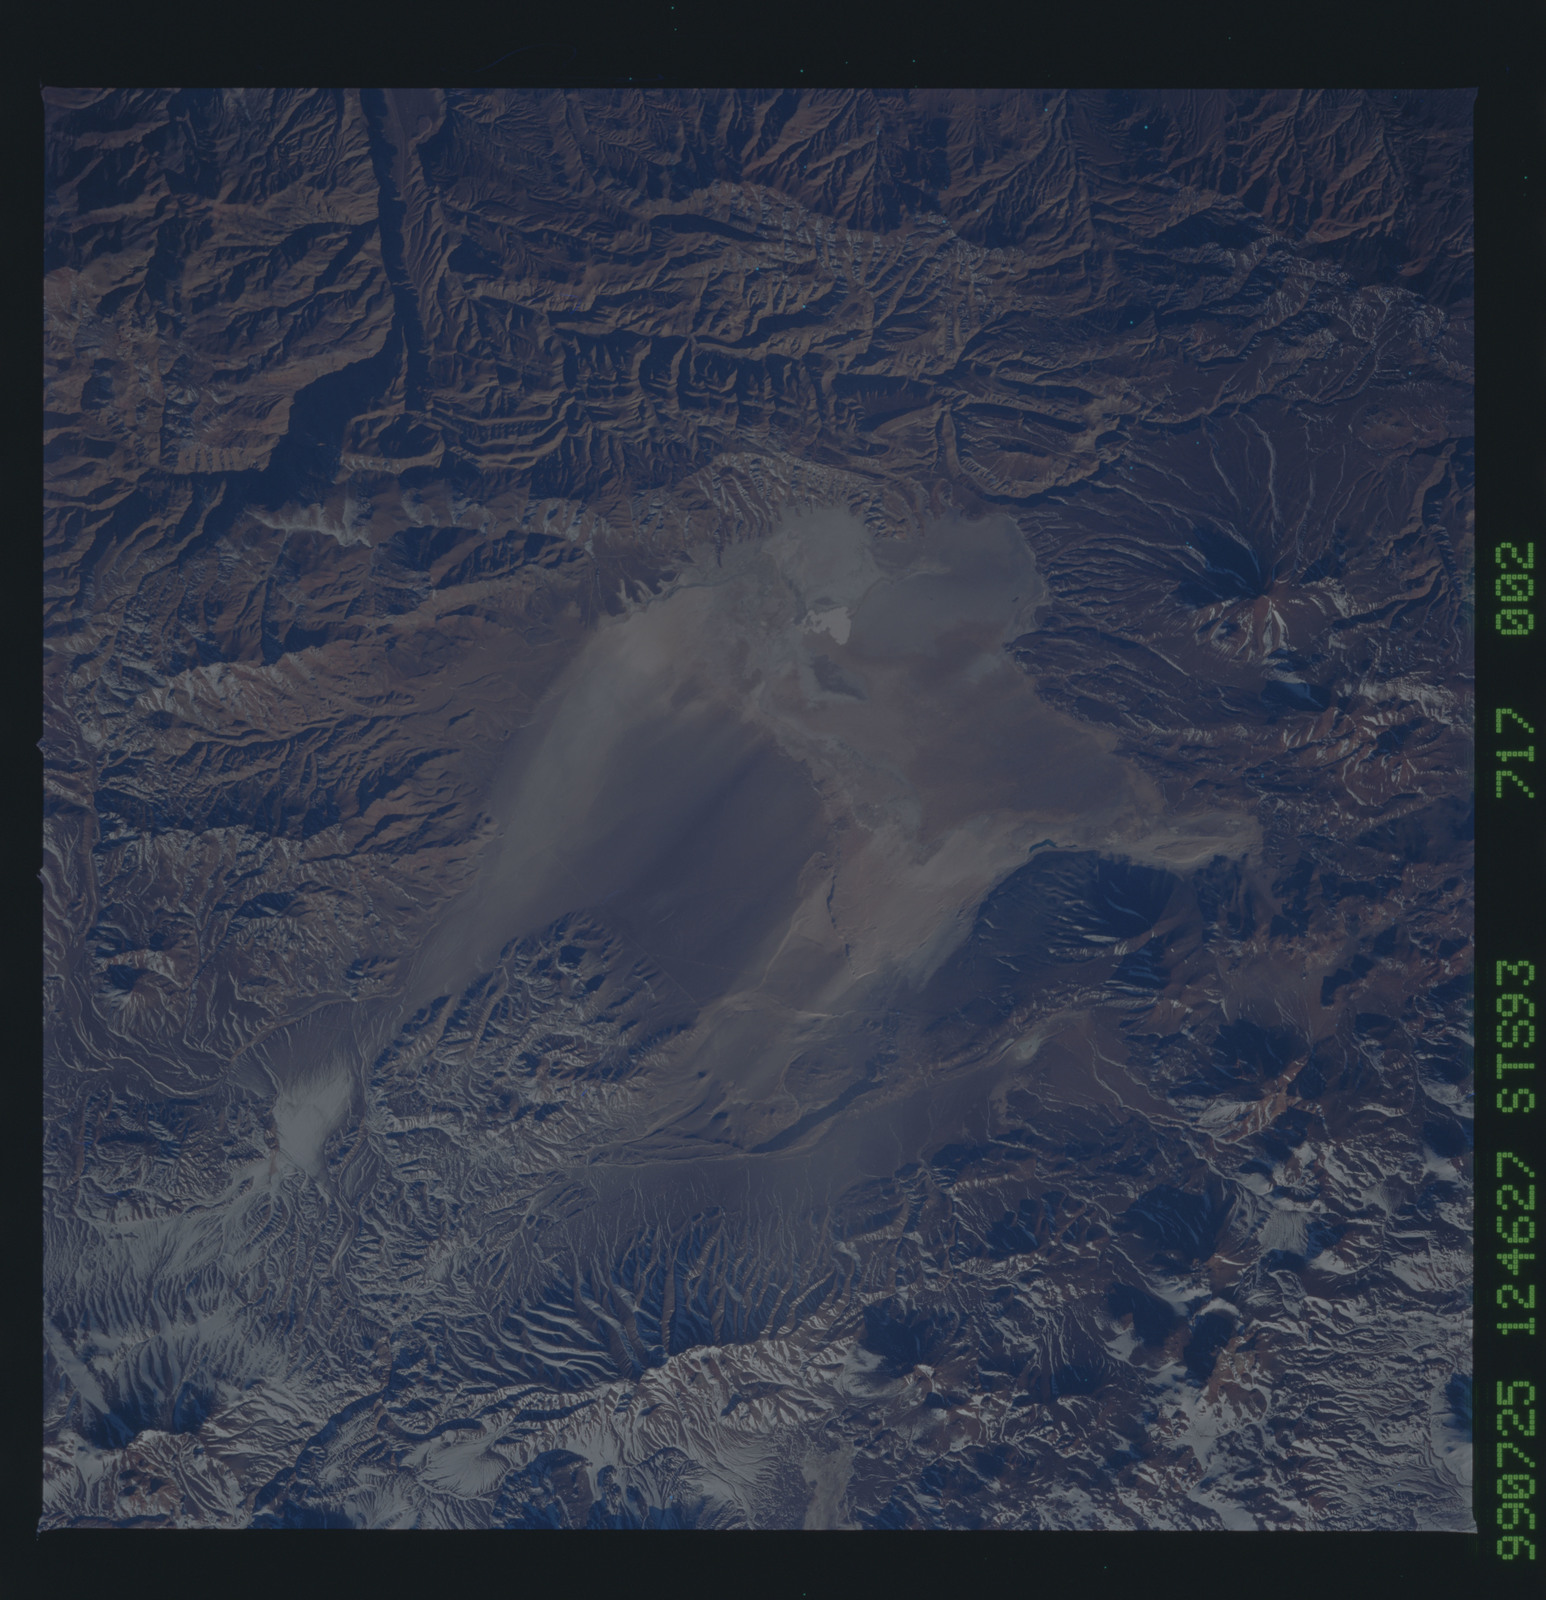 STS093-717-002 - STS-093 - Earth observations of the Andes Mts. taken from Columbia during STS-93 mission